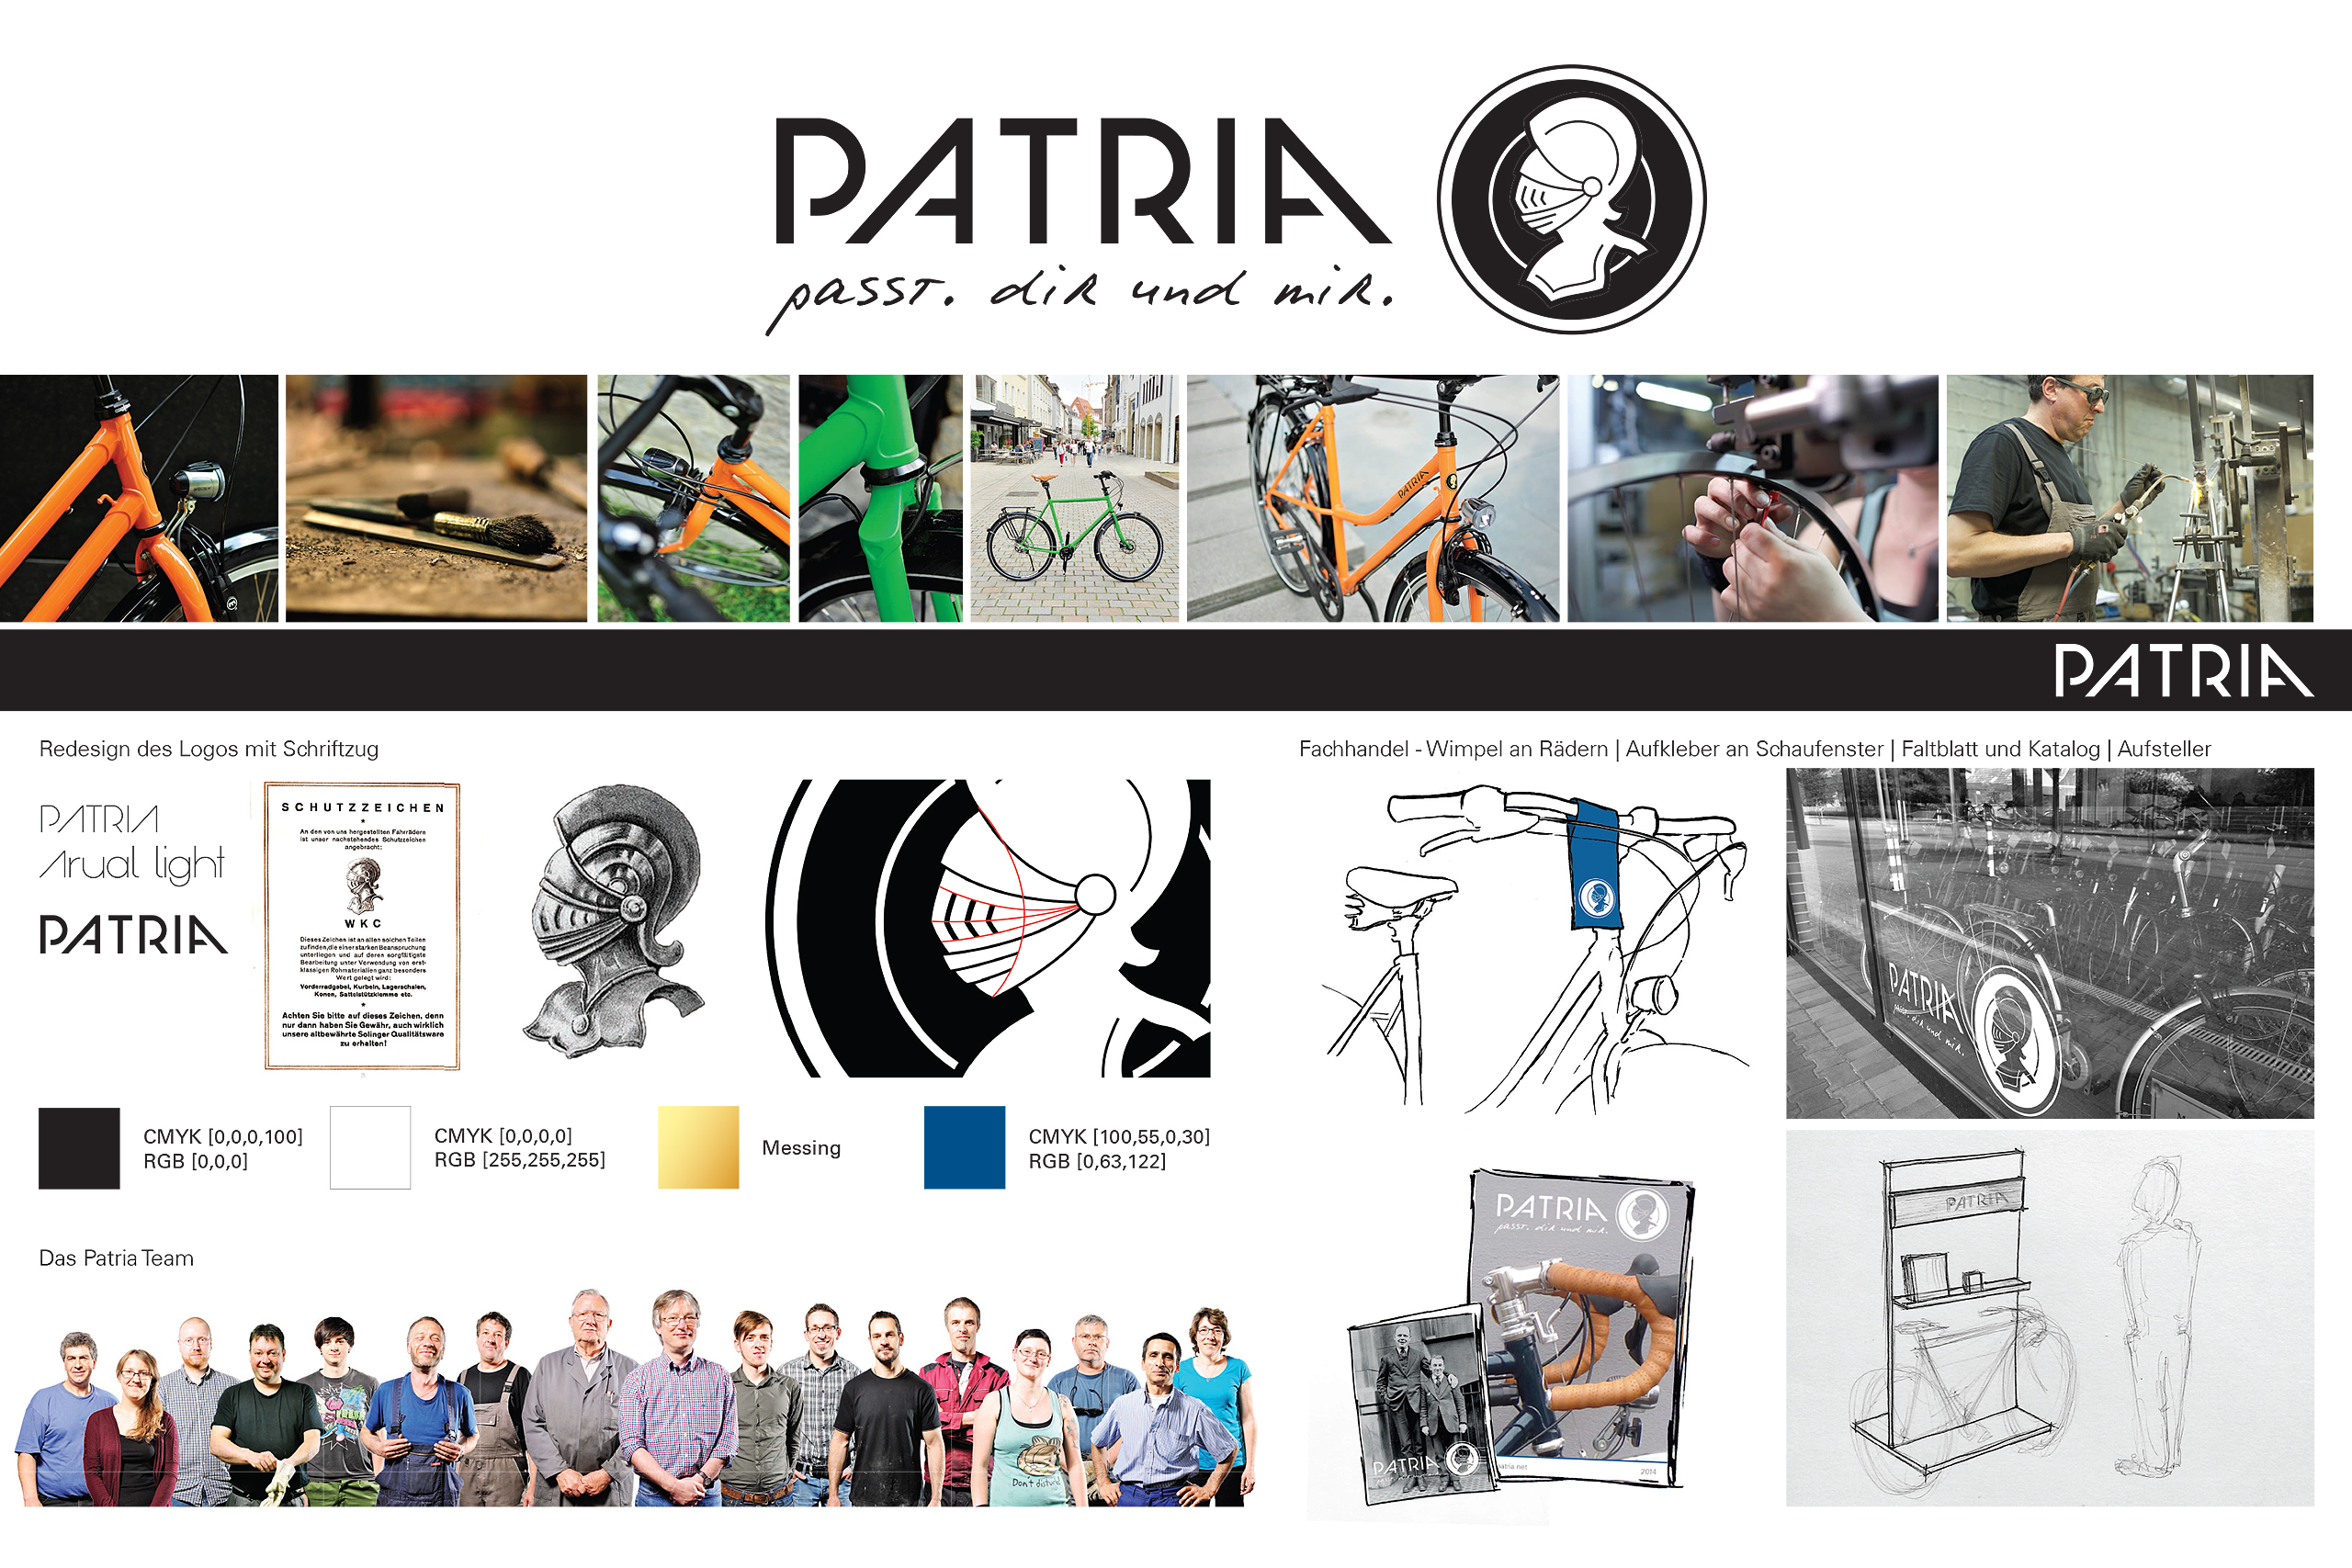 Patria Redesign (old CI and CD) – Birte Franz (BA) | Photos and Illustrations: Birte Franz